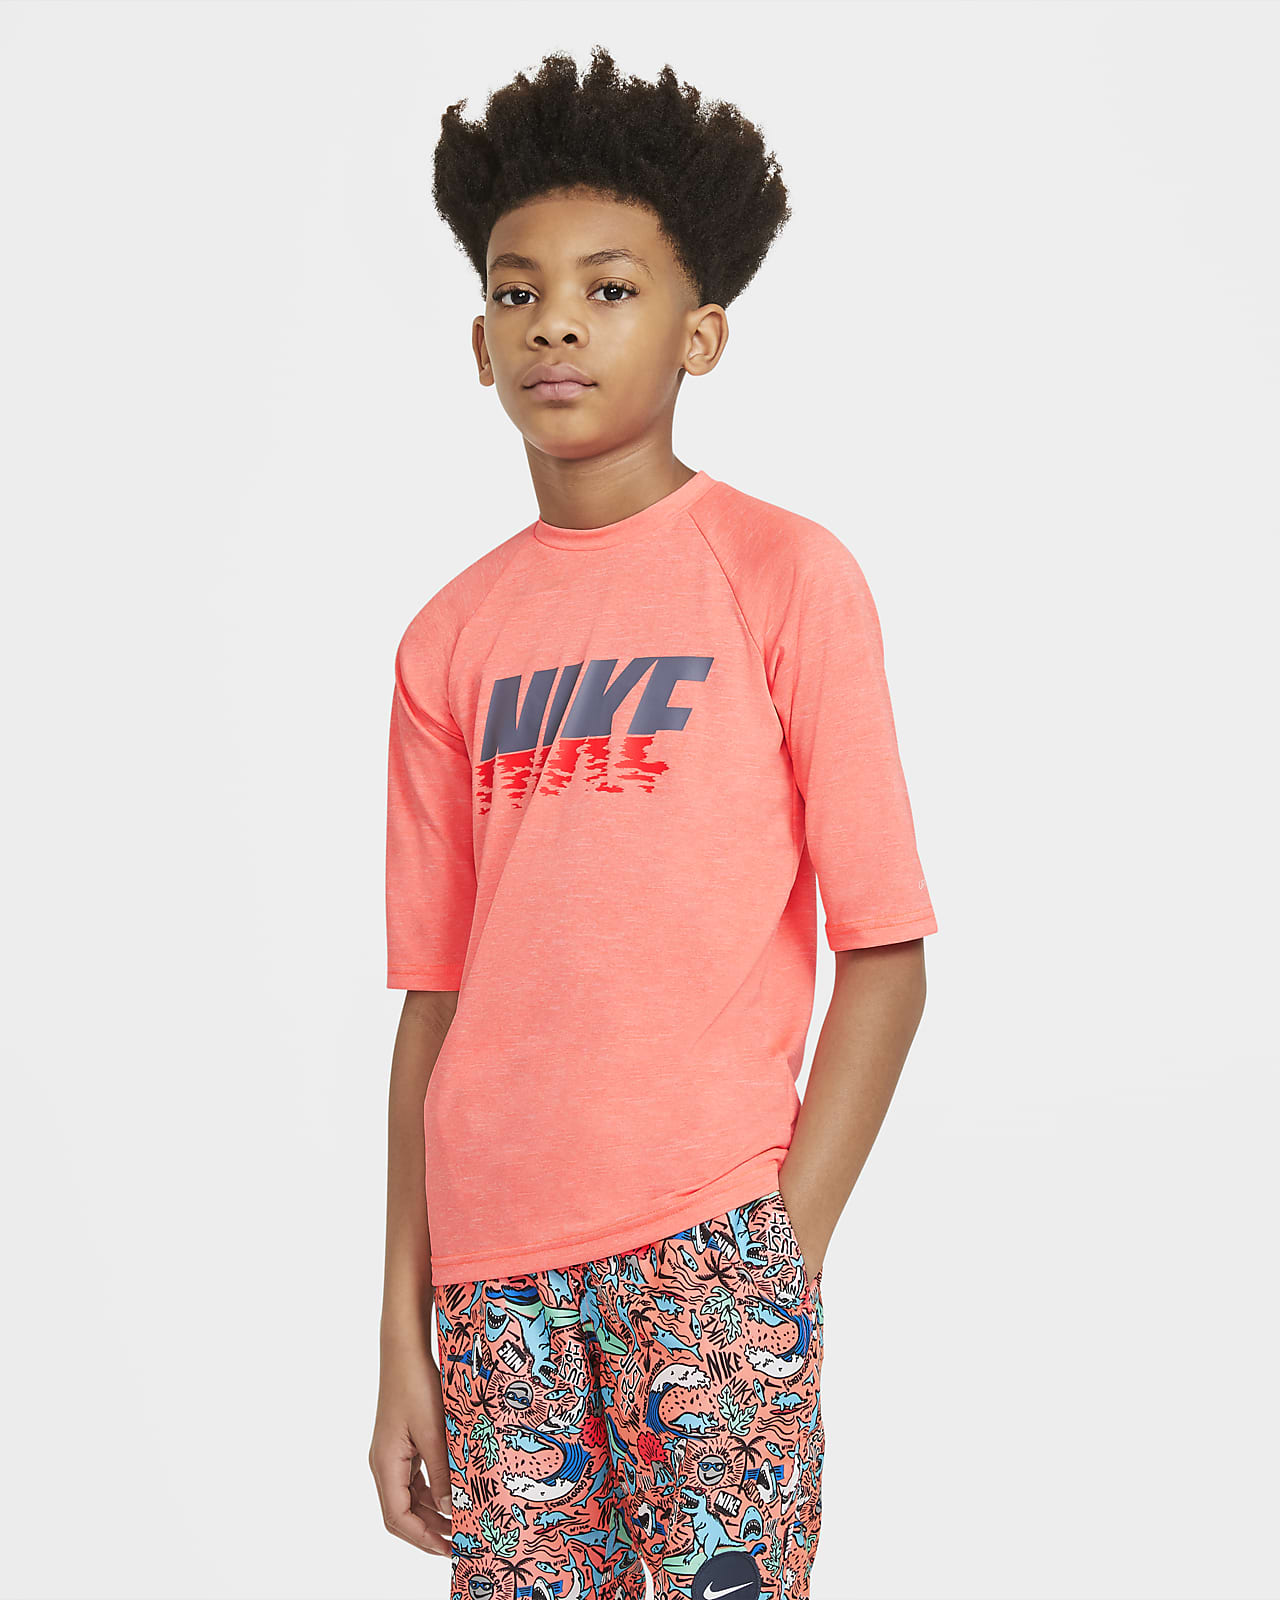 Nike Big Kids' Short-Sleeve Hydroguard Swim Shirt